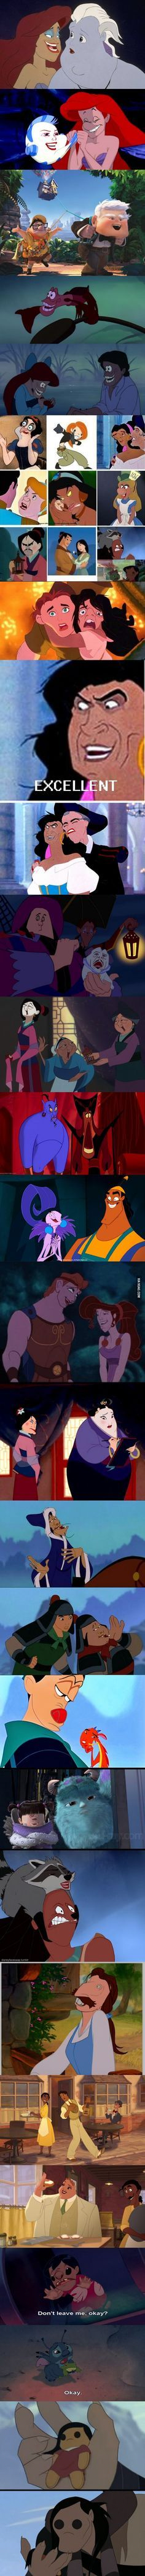 ULTIMATE DISNEY FACE SWAP